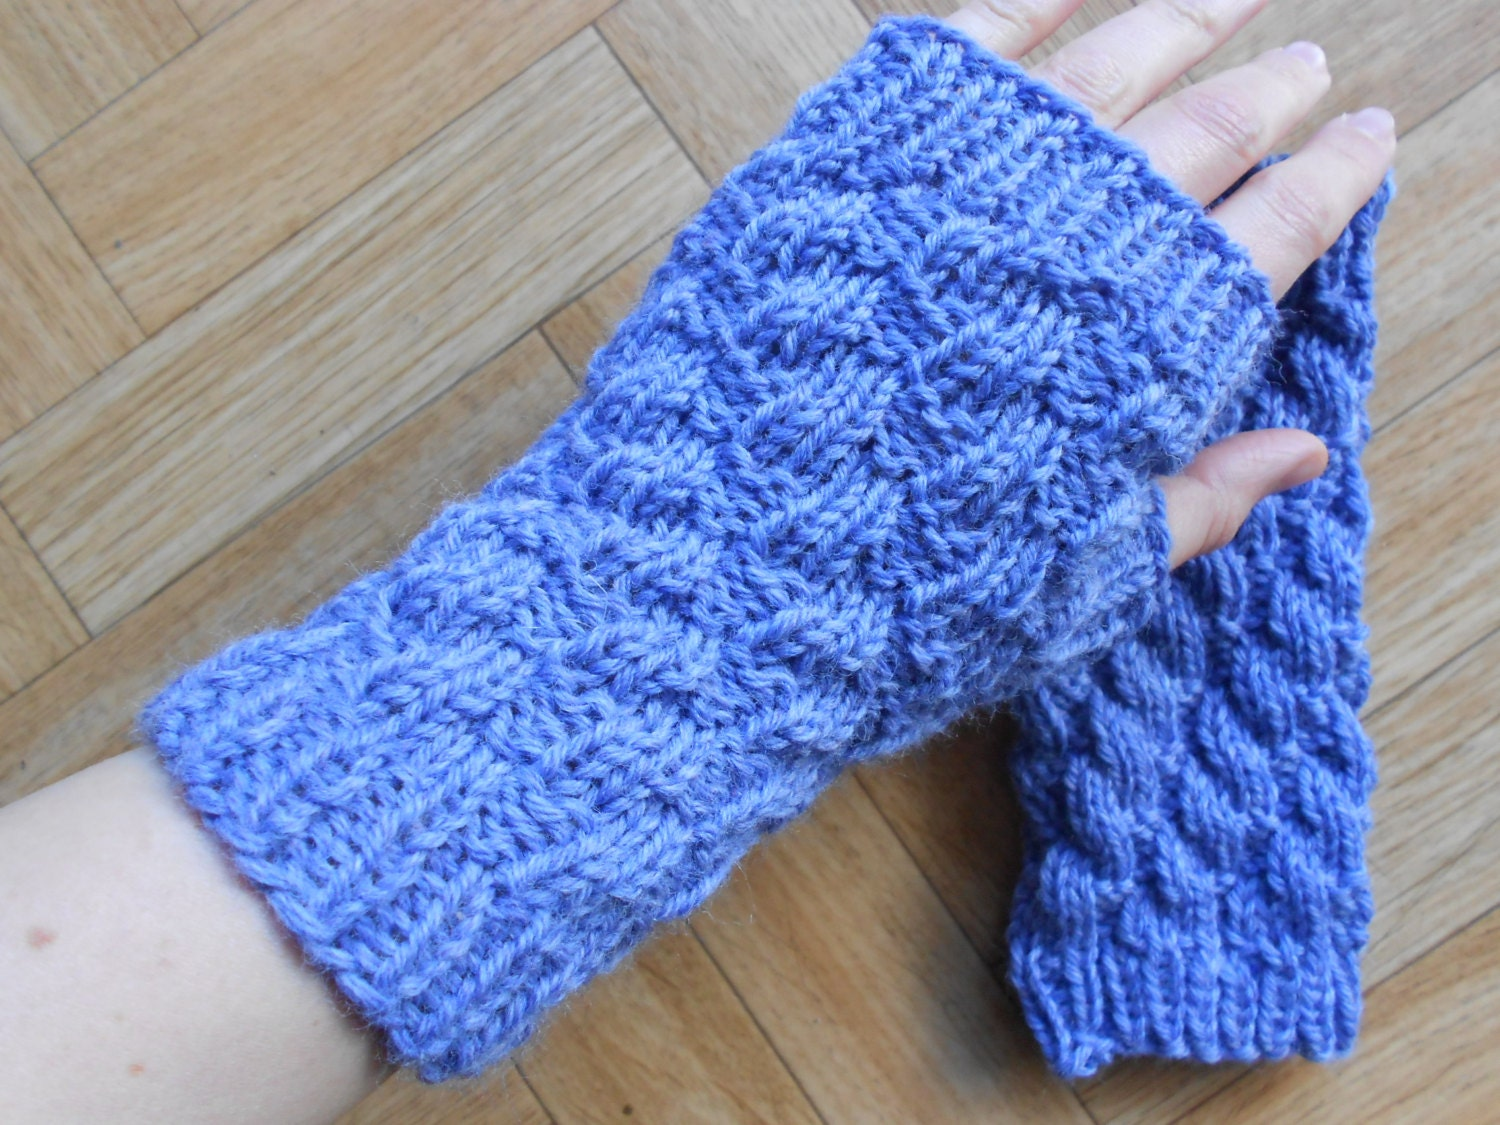 Fingerless Gloves Knitting Pattern Beginner : Easy textured fingerless gloves knitting by CuteCreationsByLea